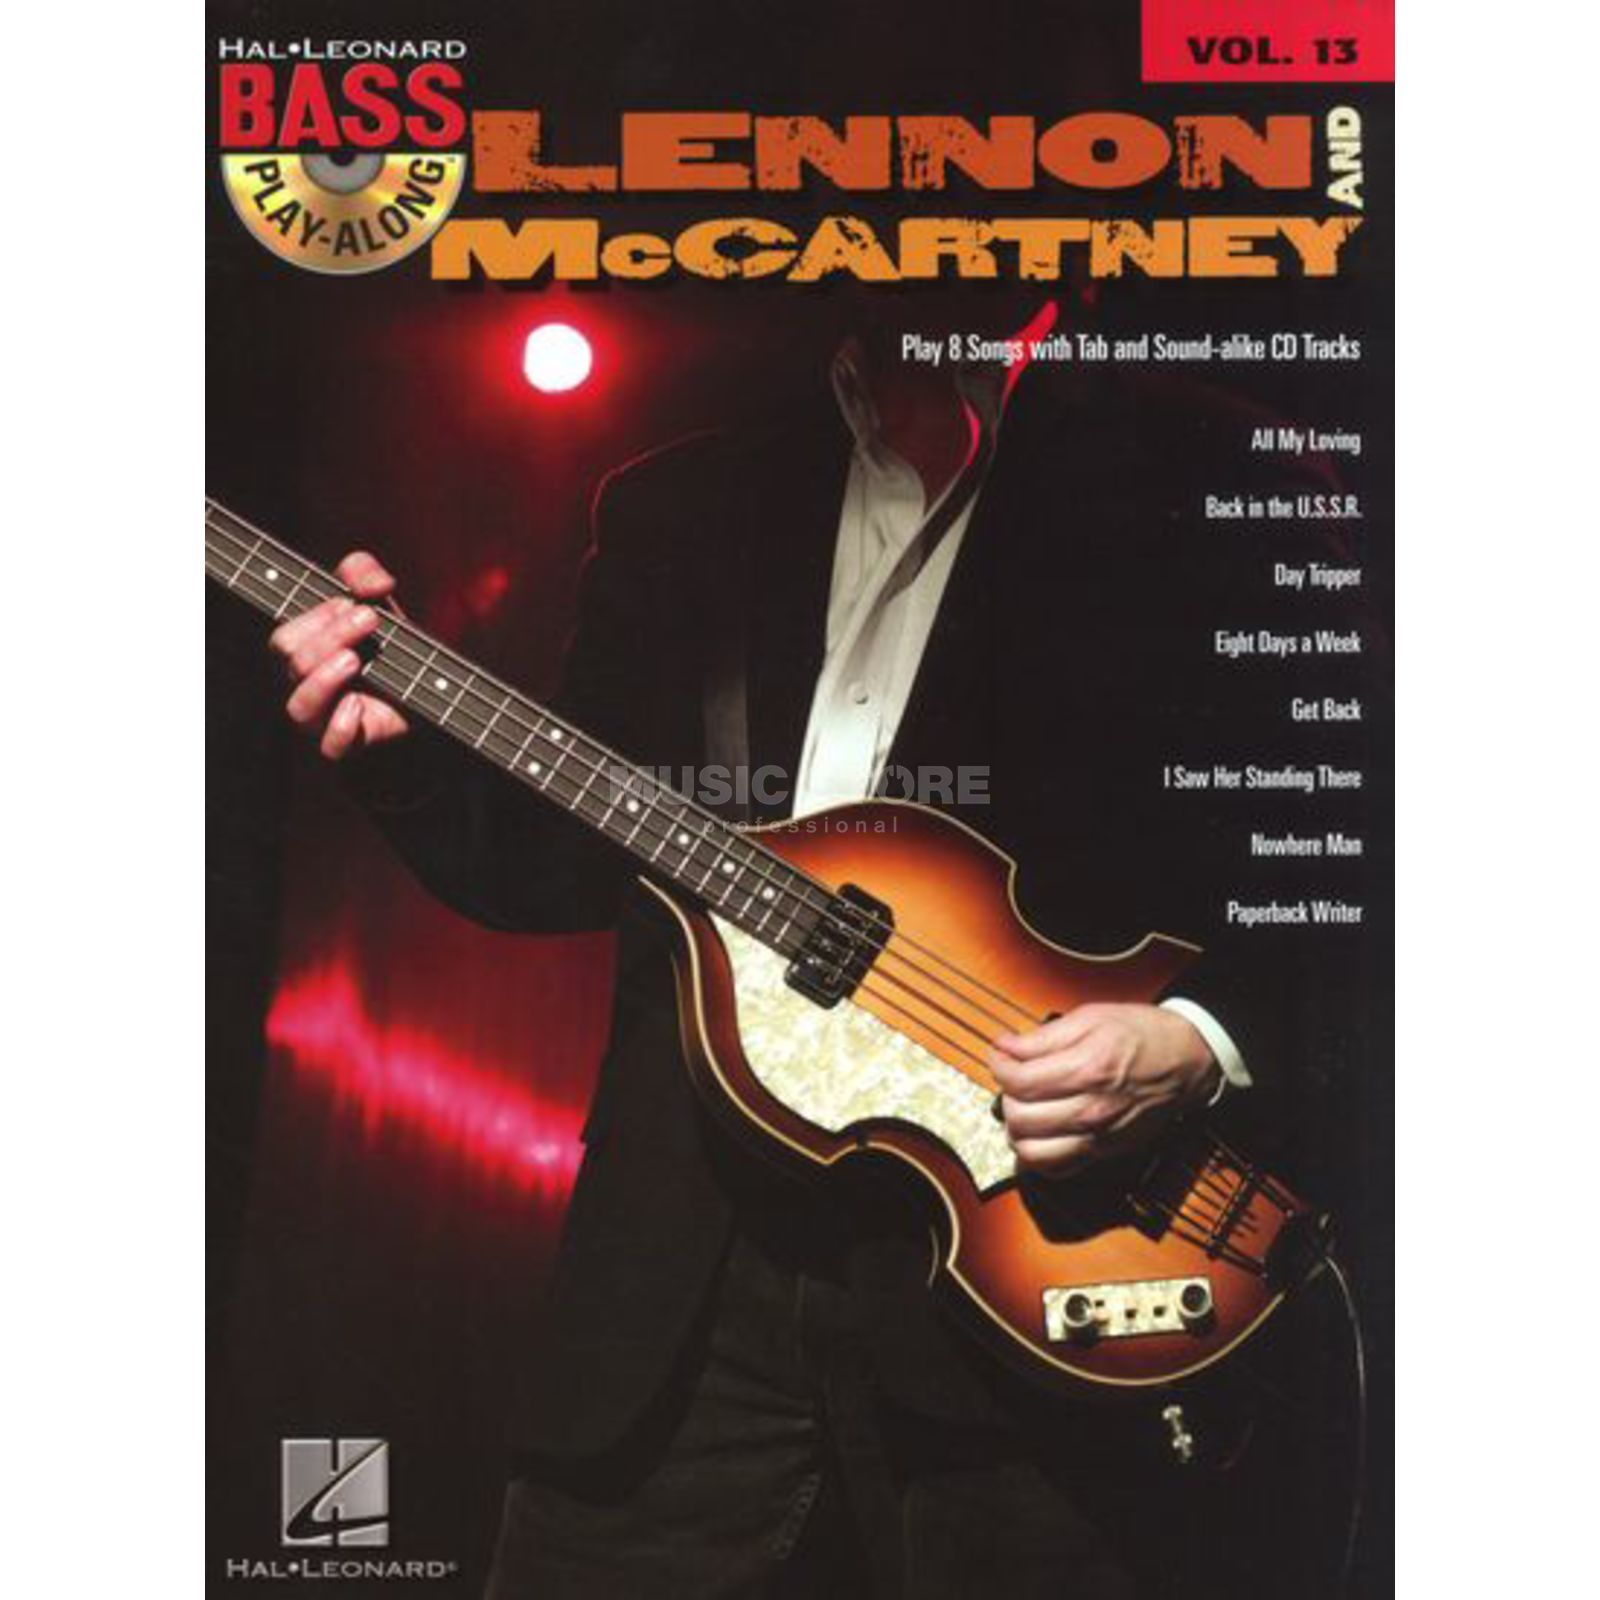 Hal Leonard Bass Play-Along - Lennon And McCartney Vol. 13, Bass TAB Produktbillede